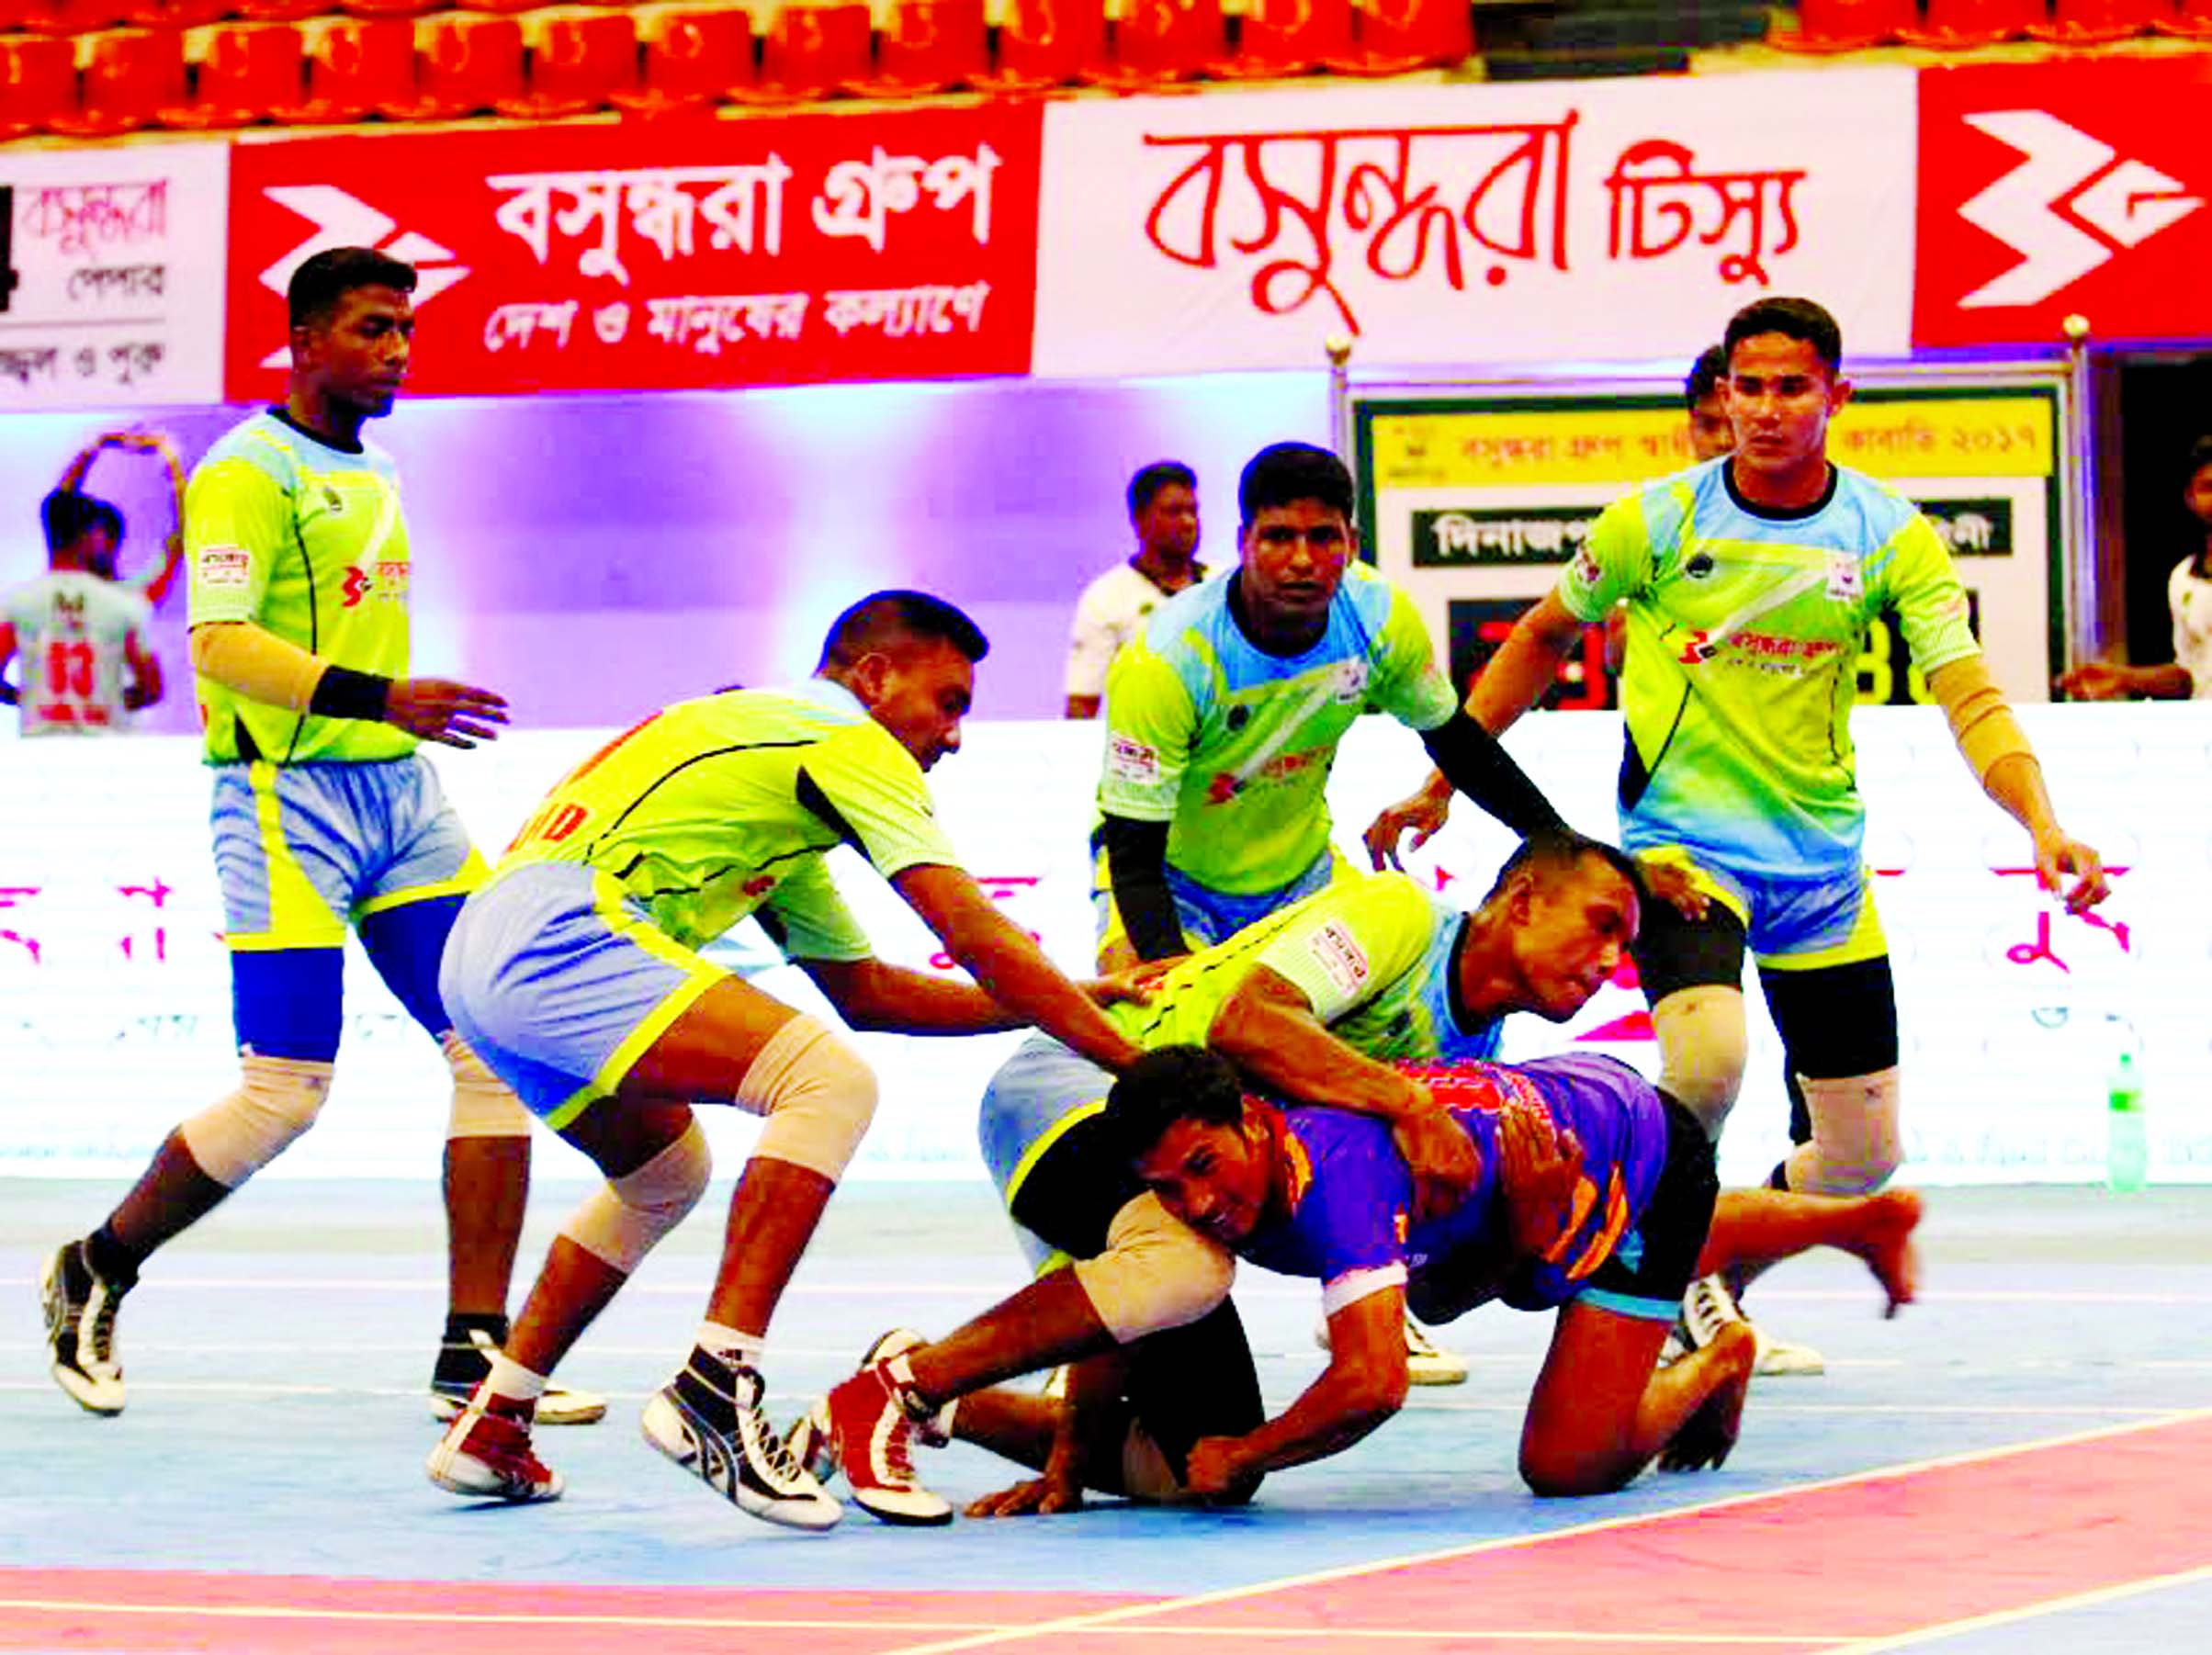 A moment of the match of the Bashundhara Presents Independence Cup Kabaddi Tournament between Bangladesh Army and Dinajpur District team at the Shaheed Suhrawardy Indoor Stadium in Mirpur on Tuesday.